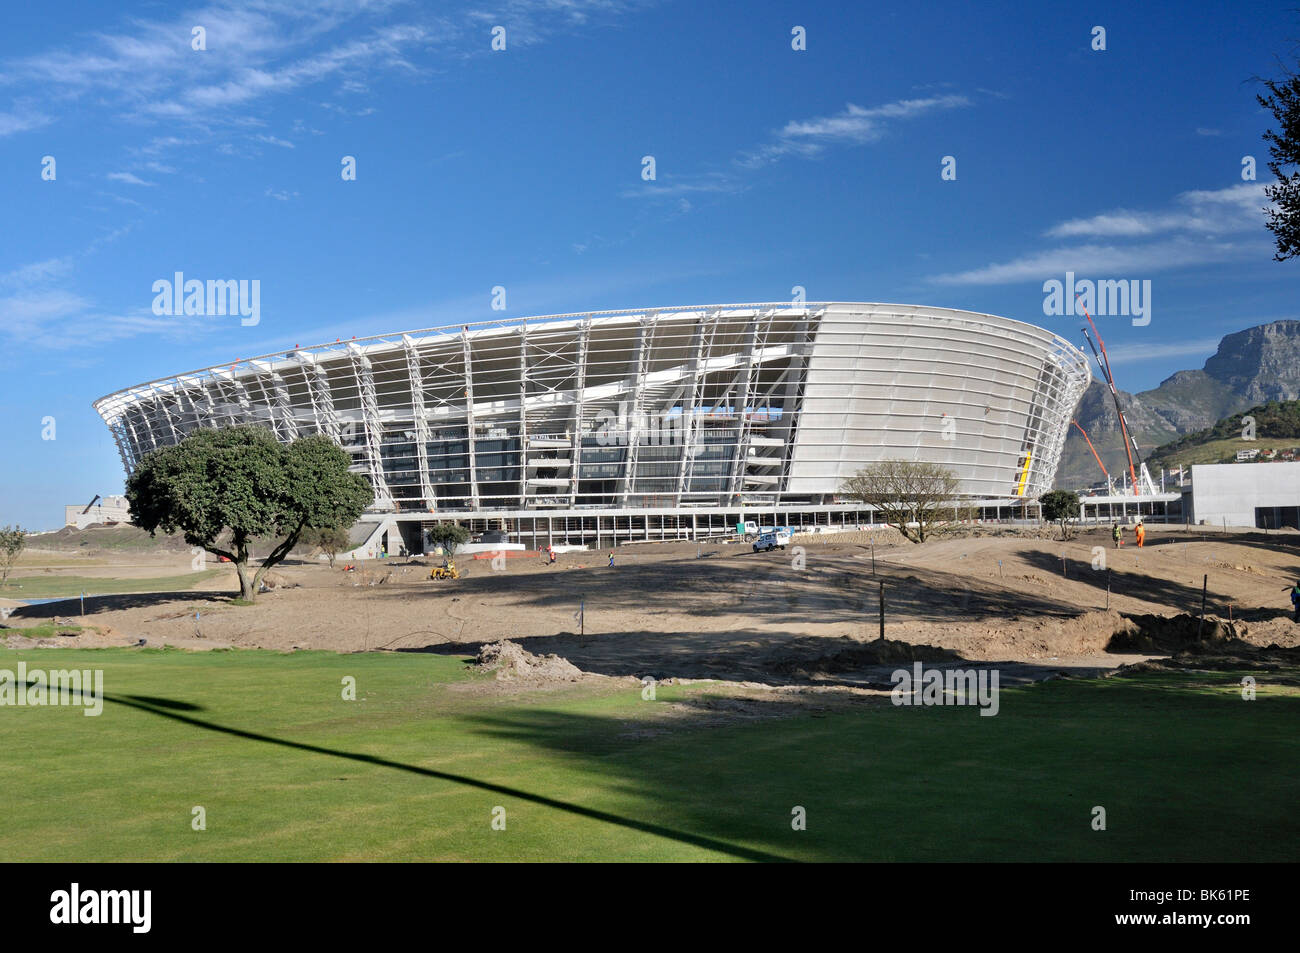 World Cup 2010, Green Point Stadium football stadium construction site, Cape Town, South Africa, AfricaWorld Cup - Stock Image